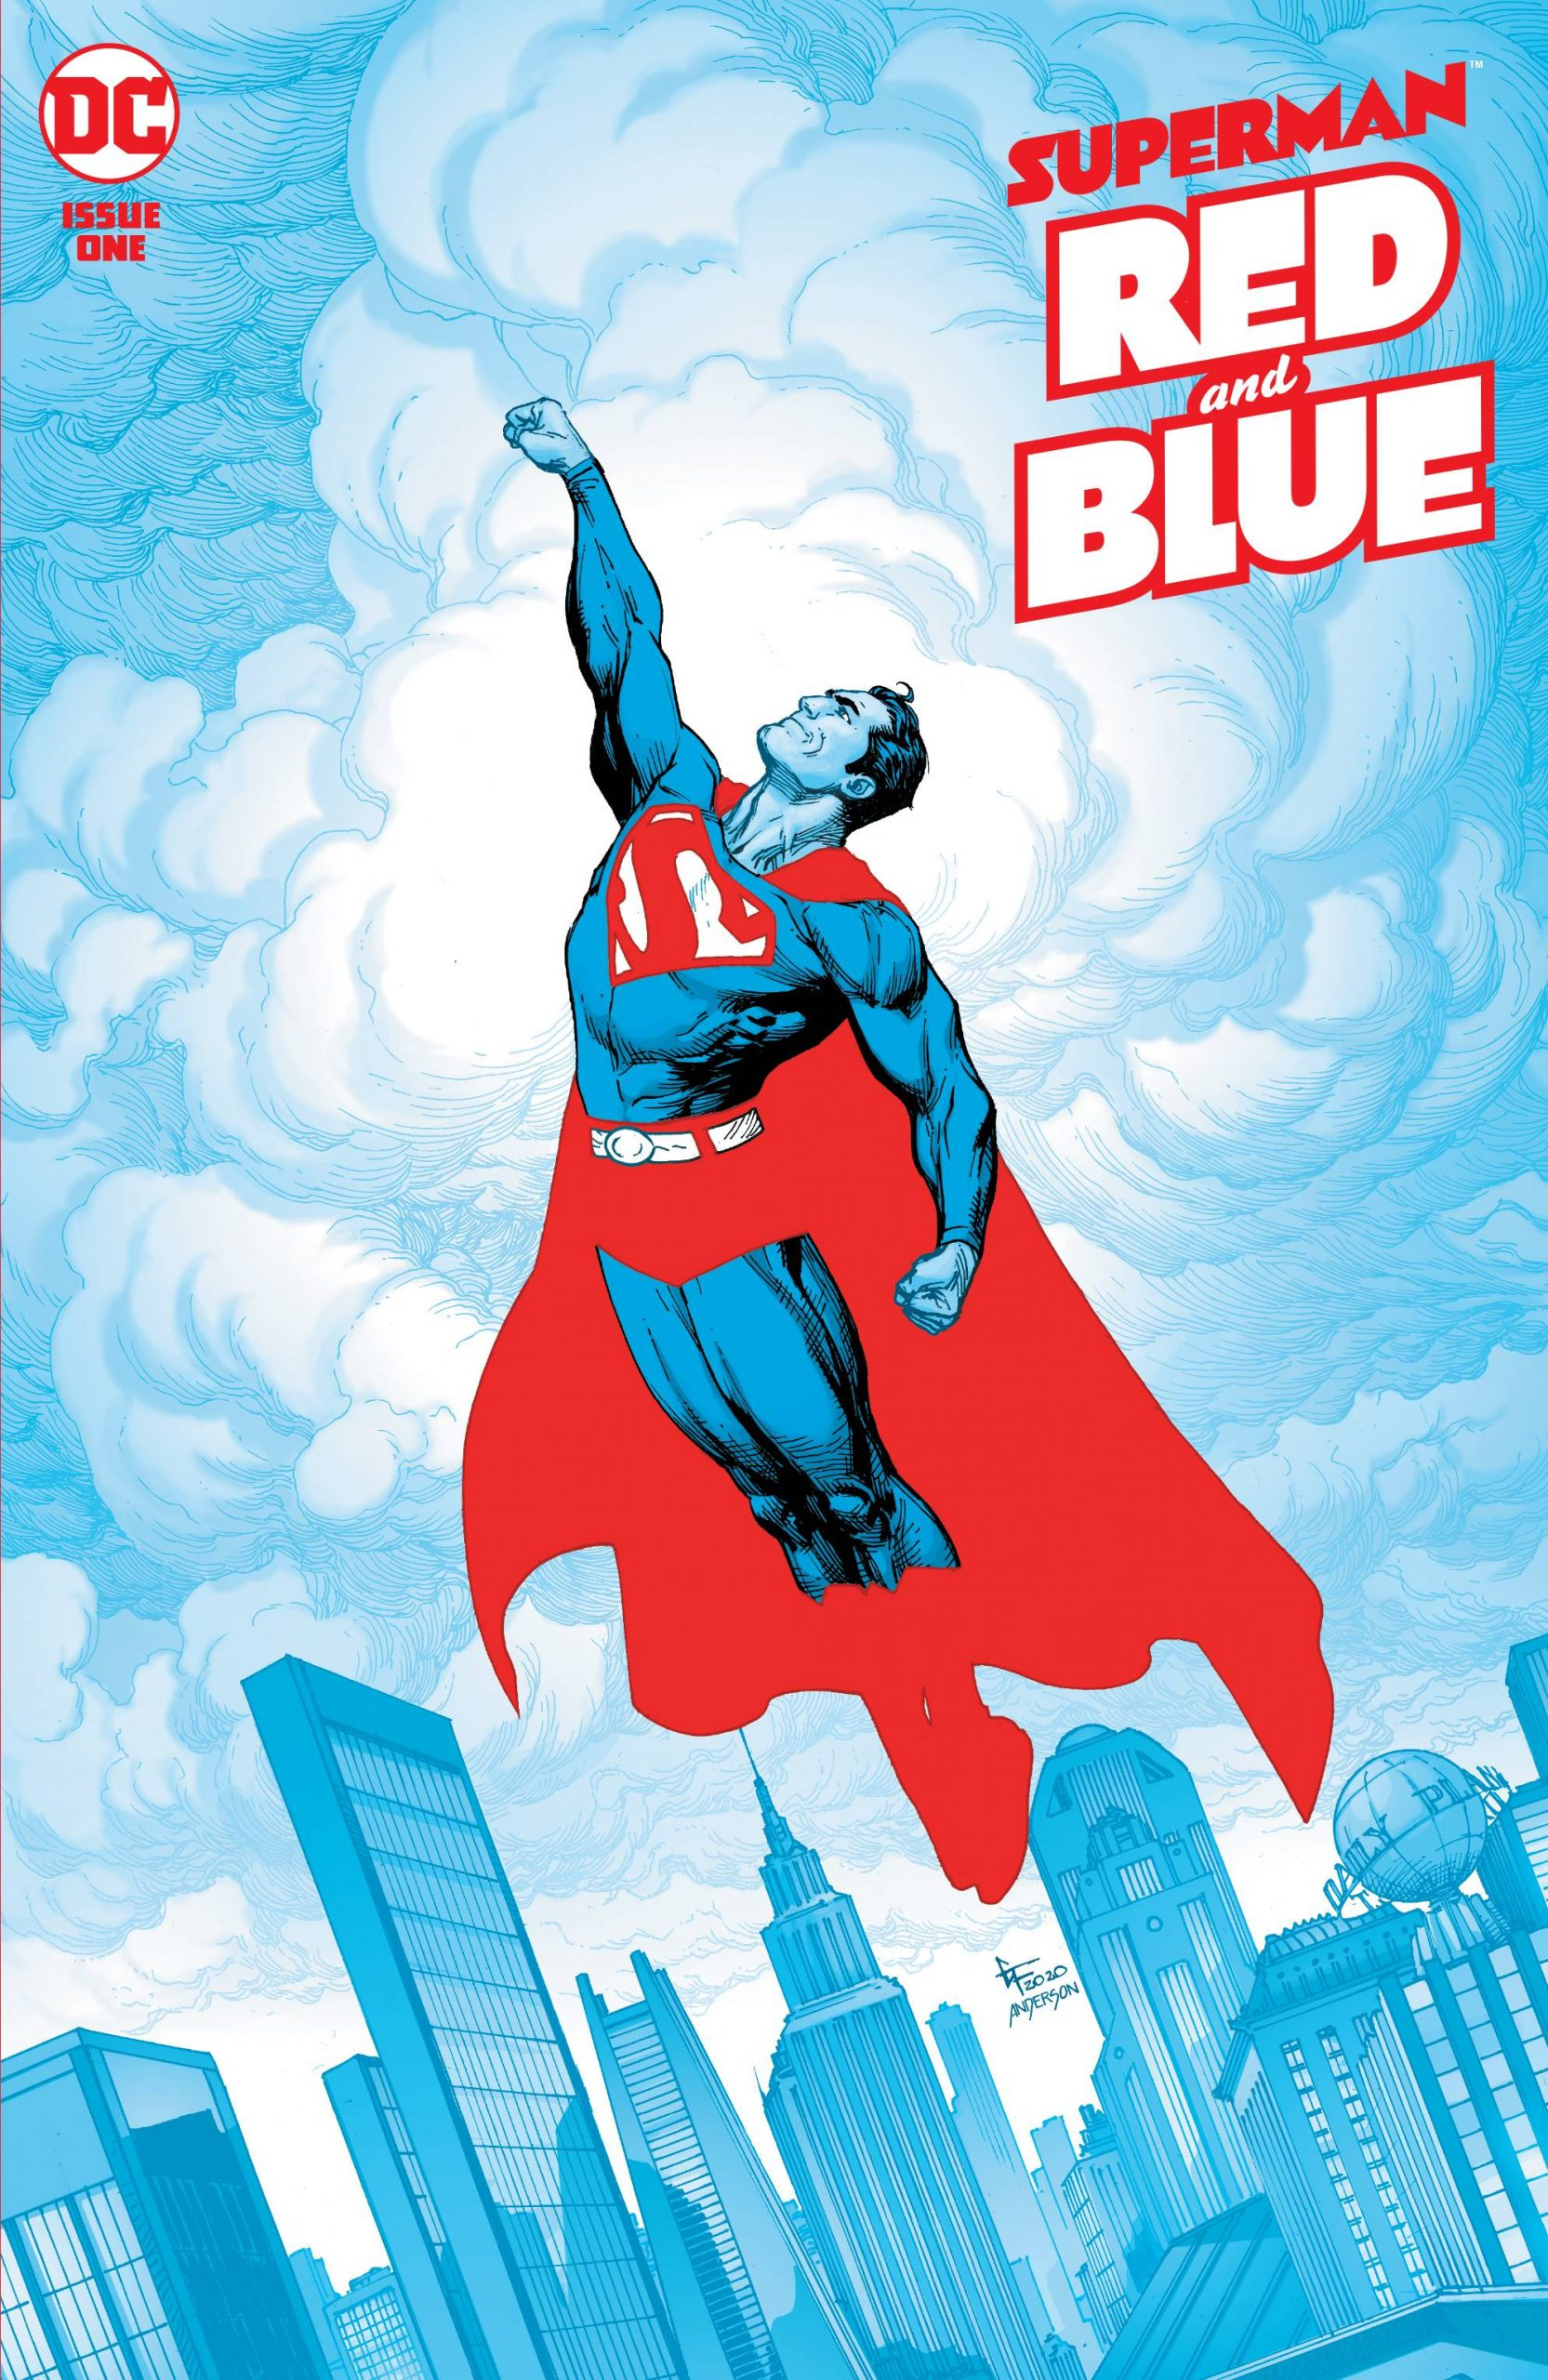 Superman-Red-Blue-1-spoilers-0-1-scaled-1 Superman-Red-Blue-1-spoilers-0-1-scaled-1